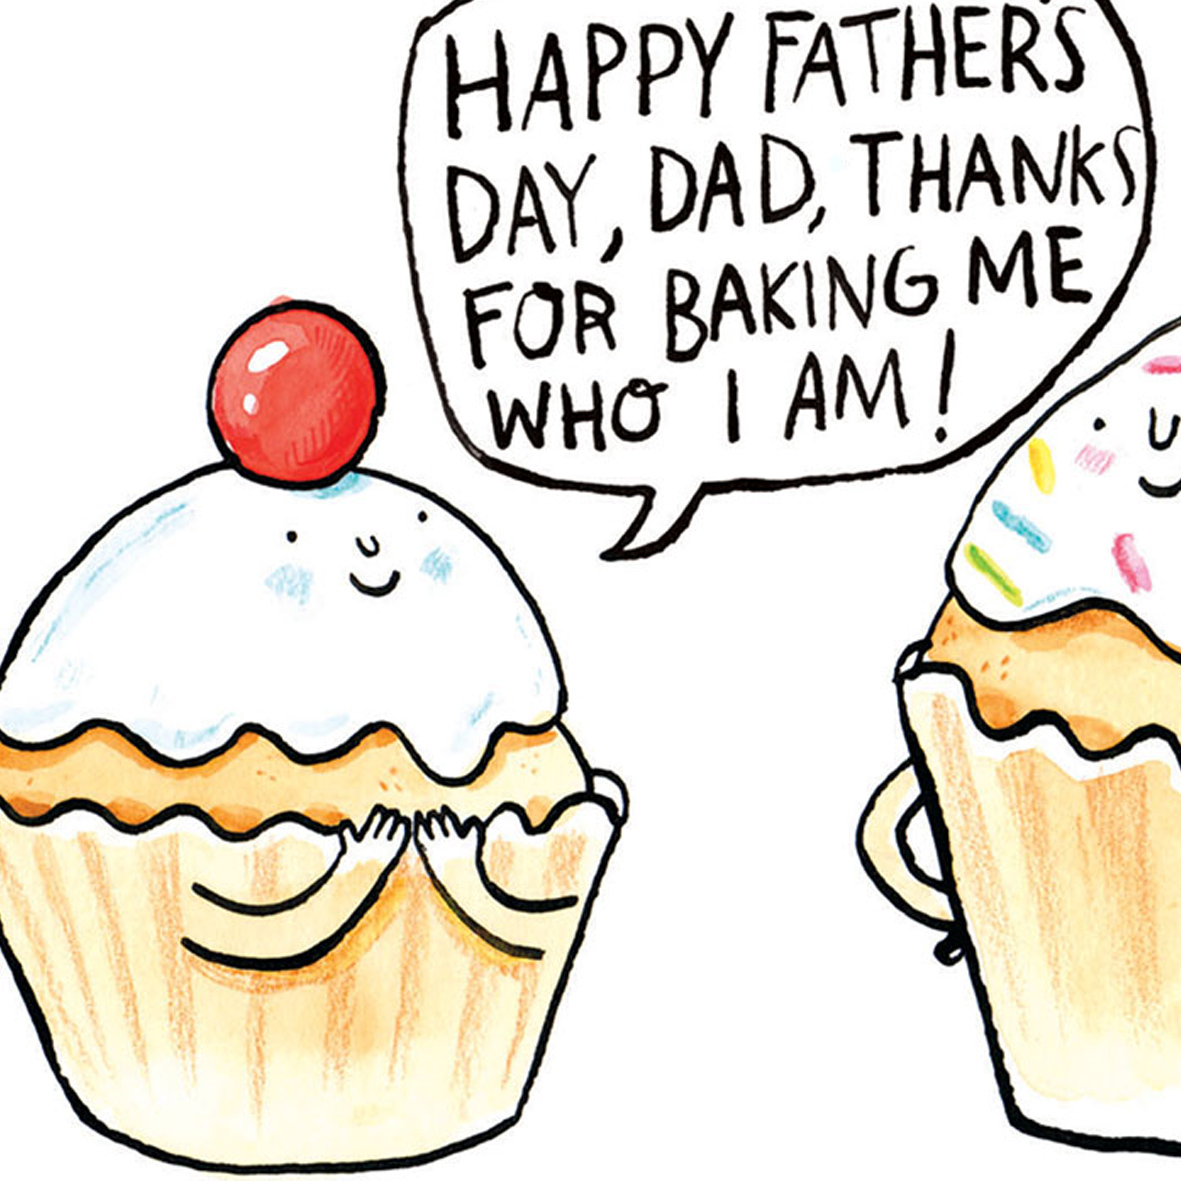 Taking-Me-Who-I-Am-DAD_-Fathers-Day-Card-for-bakers-and-dads-who-love-cake_-FD12_CU